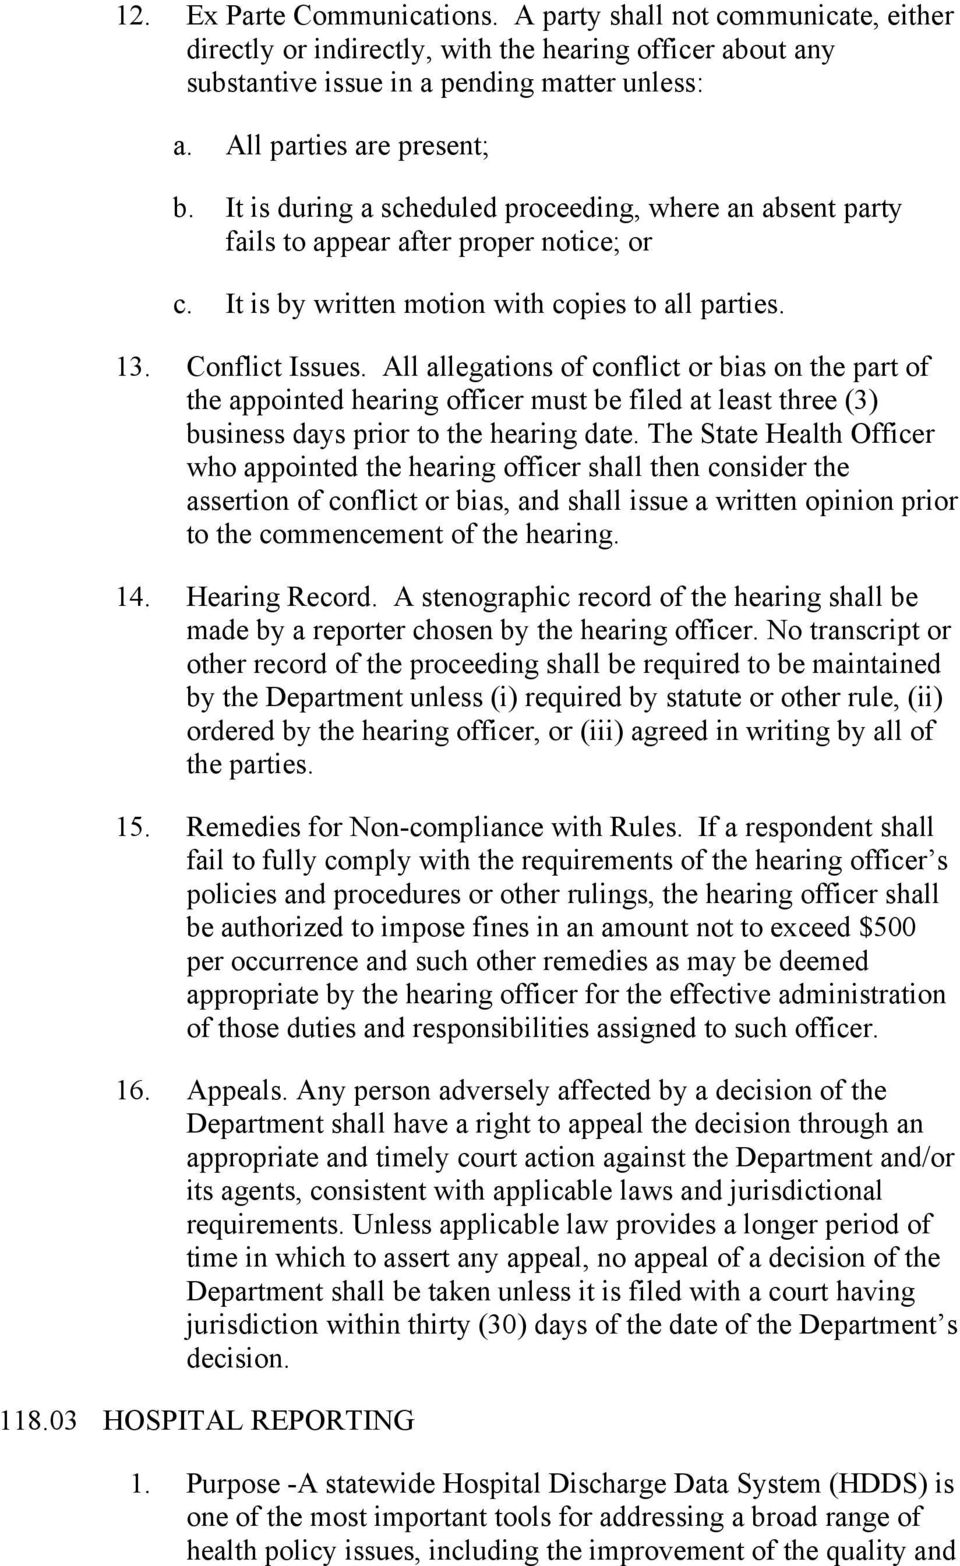 Conflict Issues. All allegations of conflict or bias on the part of the appointed hearing officer must be filed at least three (3) business days prior to the hearing date.